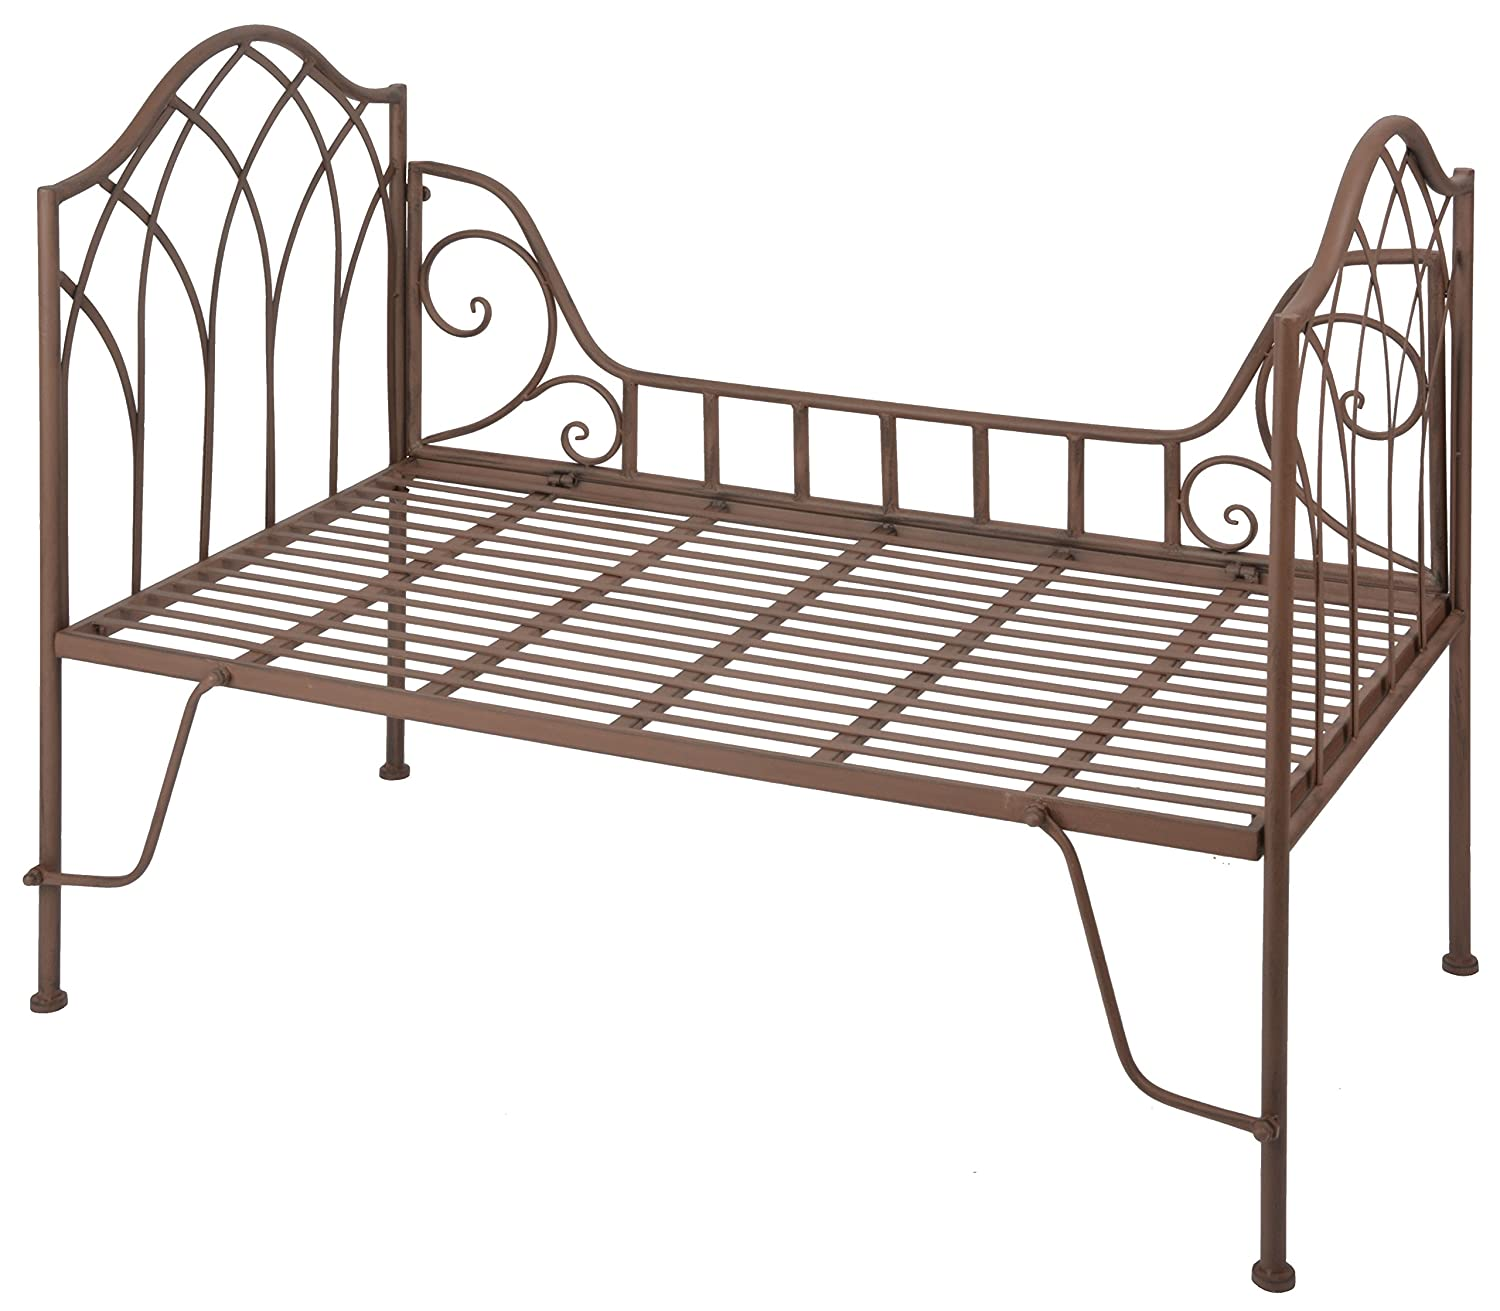 Aged Metal French Day Bed Garden Bed.